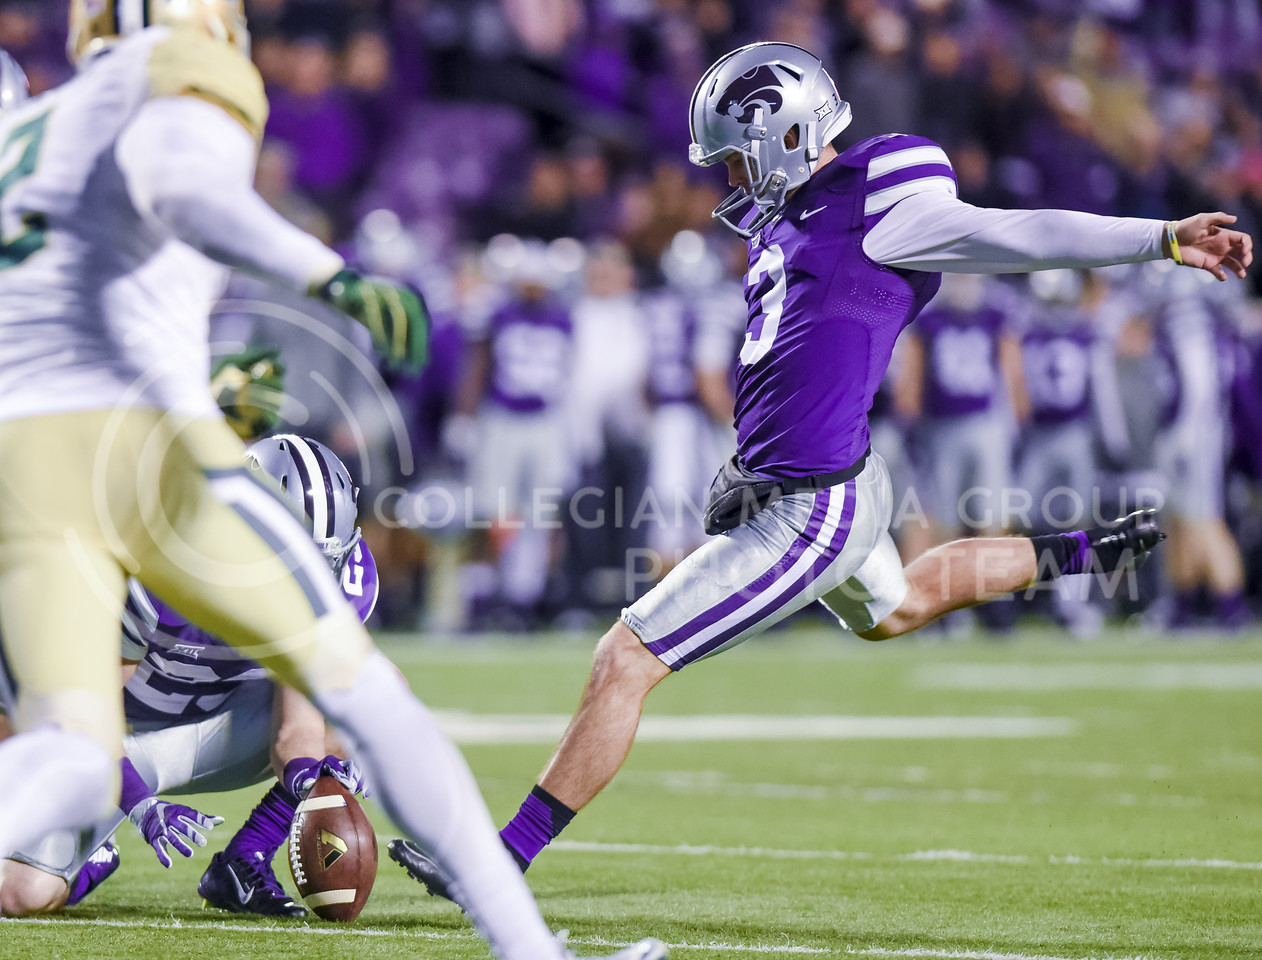 Senior kicker Jack Cantele puts in the extra point after Joe Hubener's touchdown run in the fourth quarter of the Wildcats' 24-31 loss to the No. 2 Bears Nov. 5, 2015, in Bill Snyder Family Stadium. (Parker Robb | The Collegian)